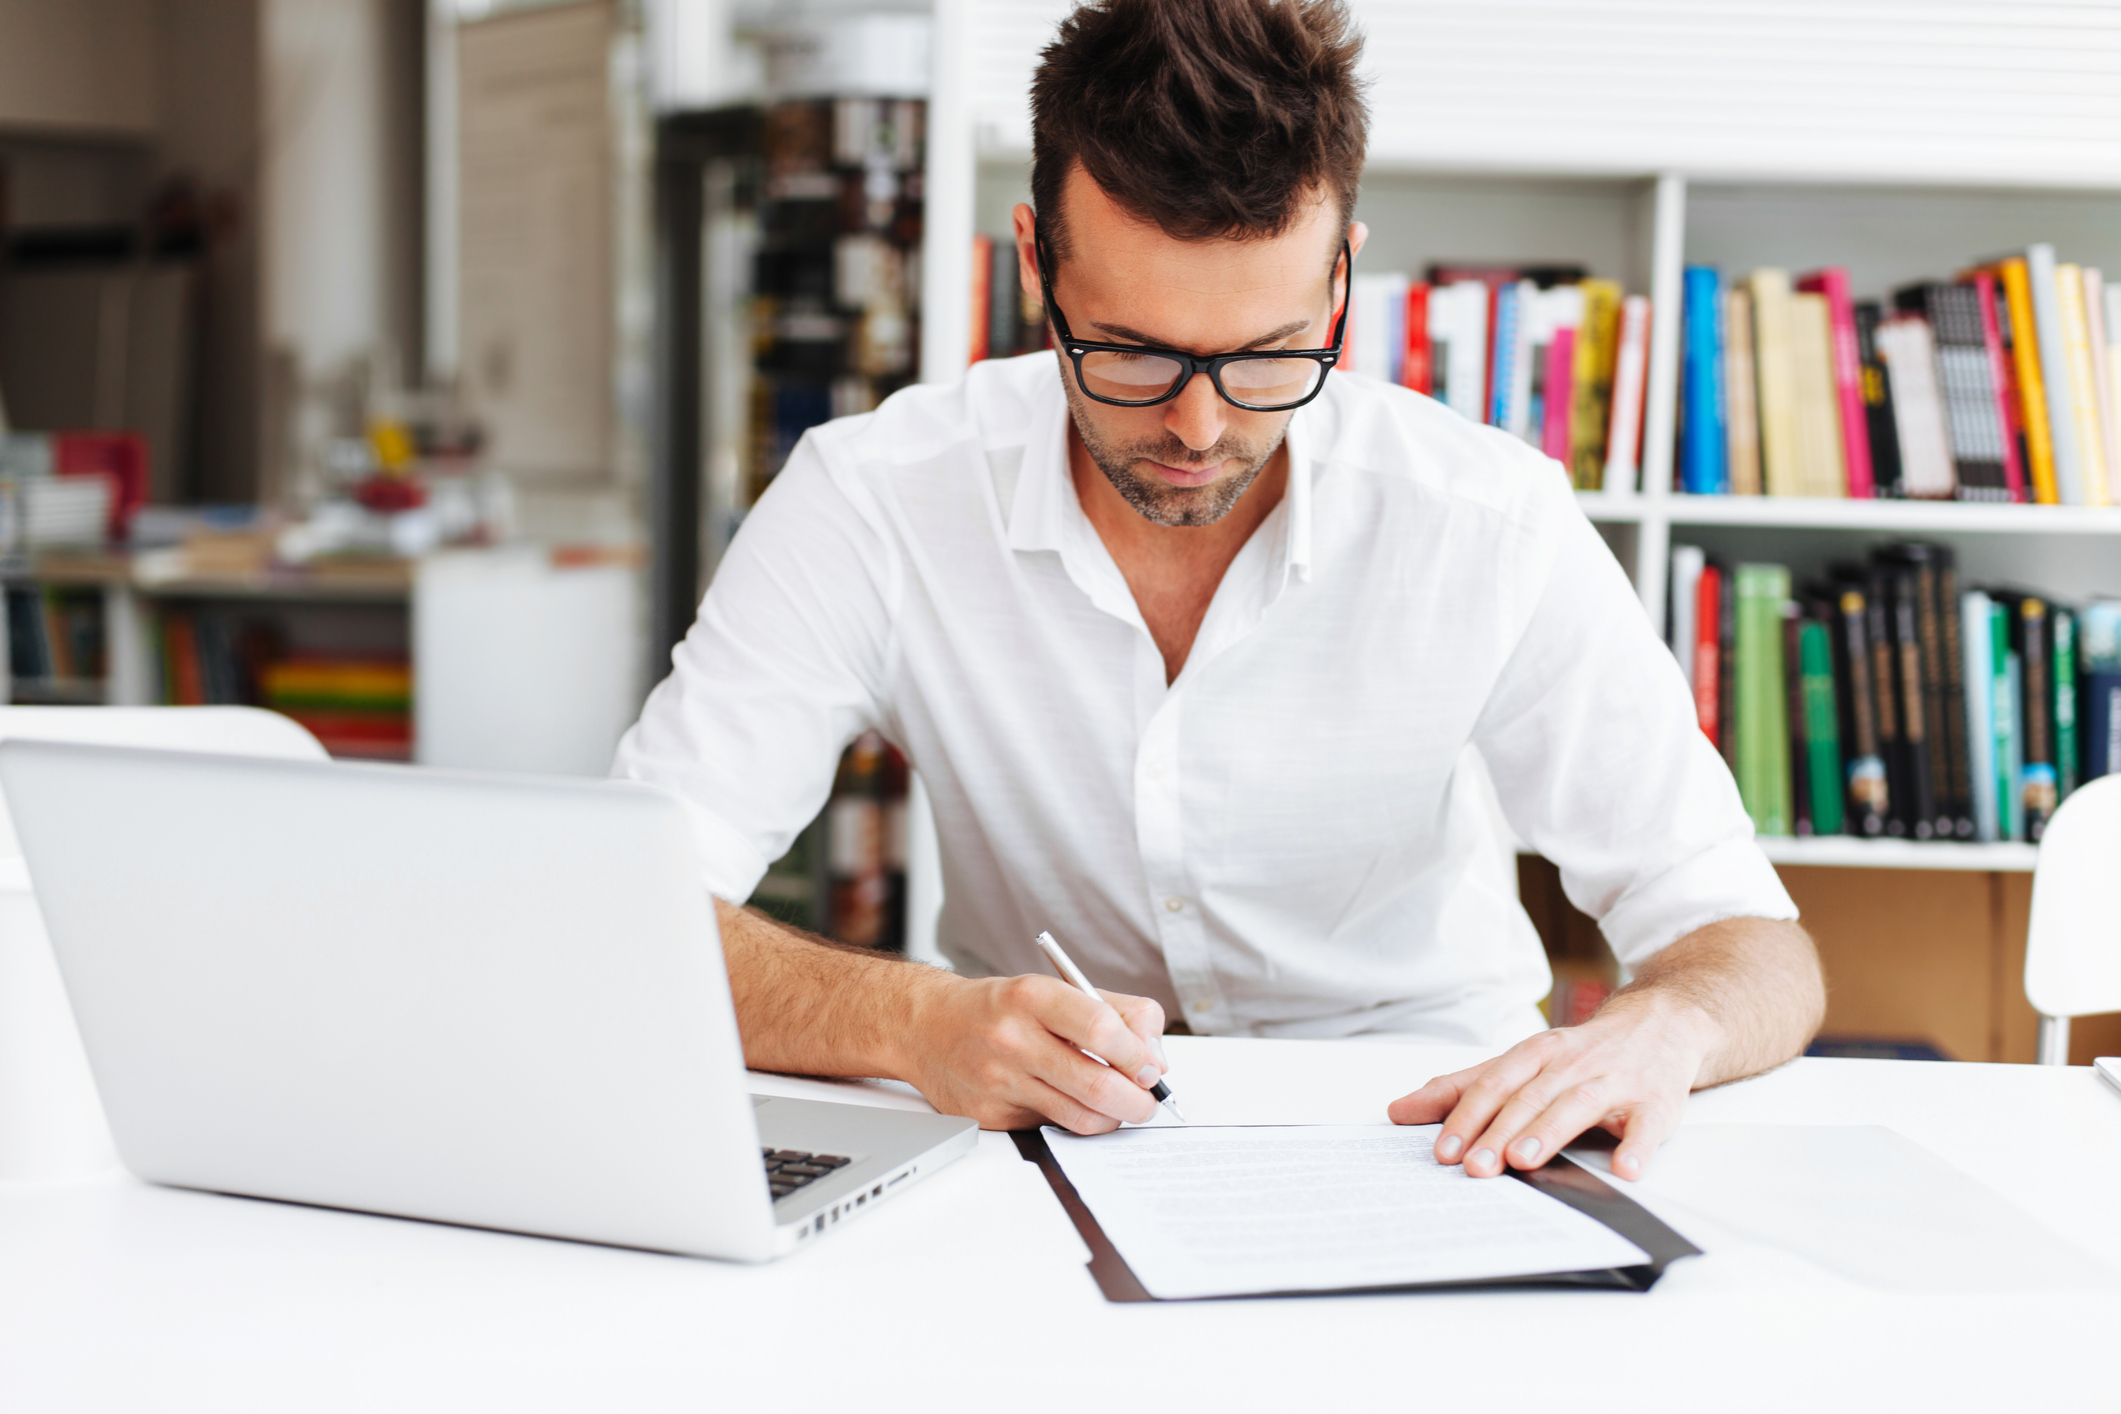 Man going over papers, sitting in front of laptop